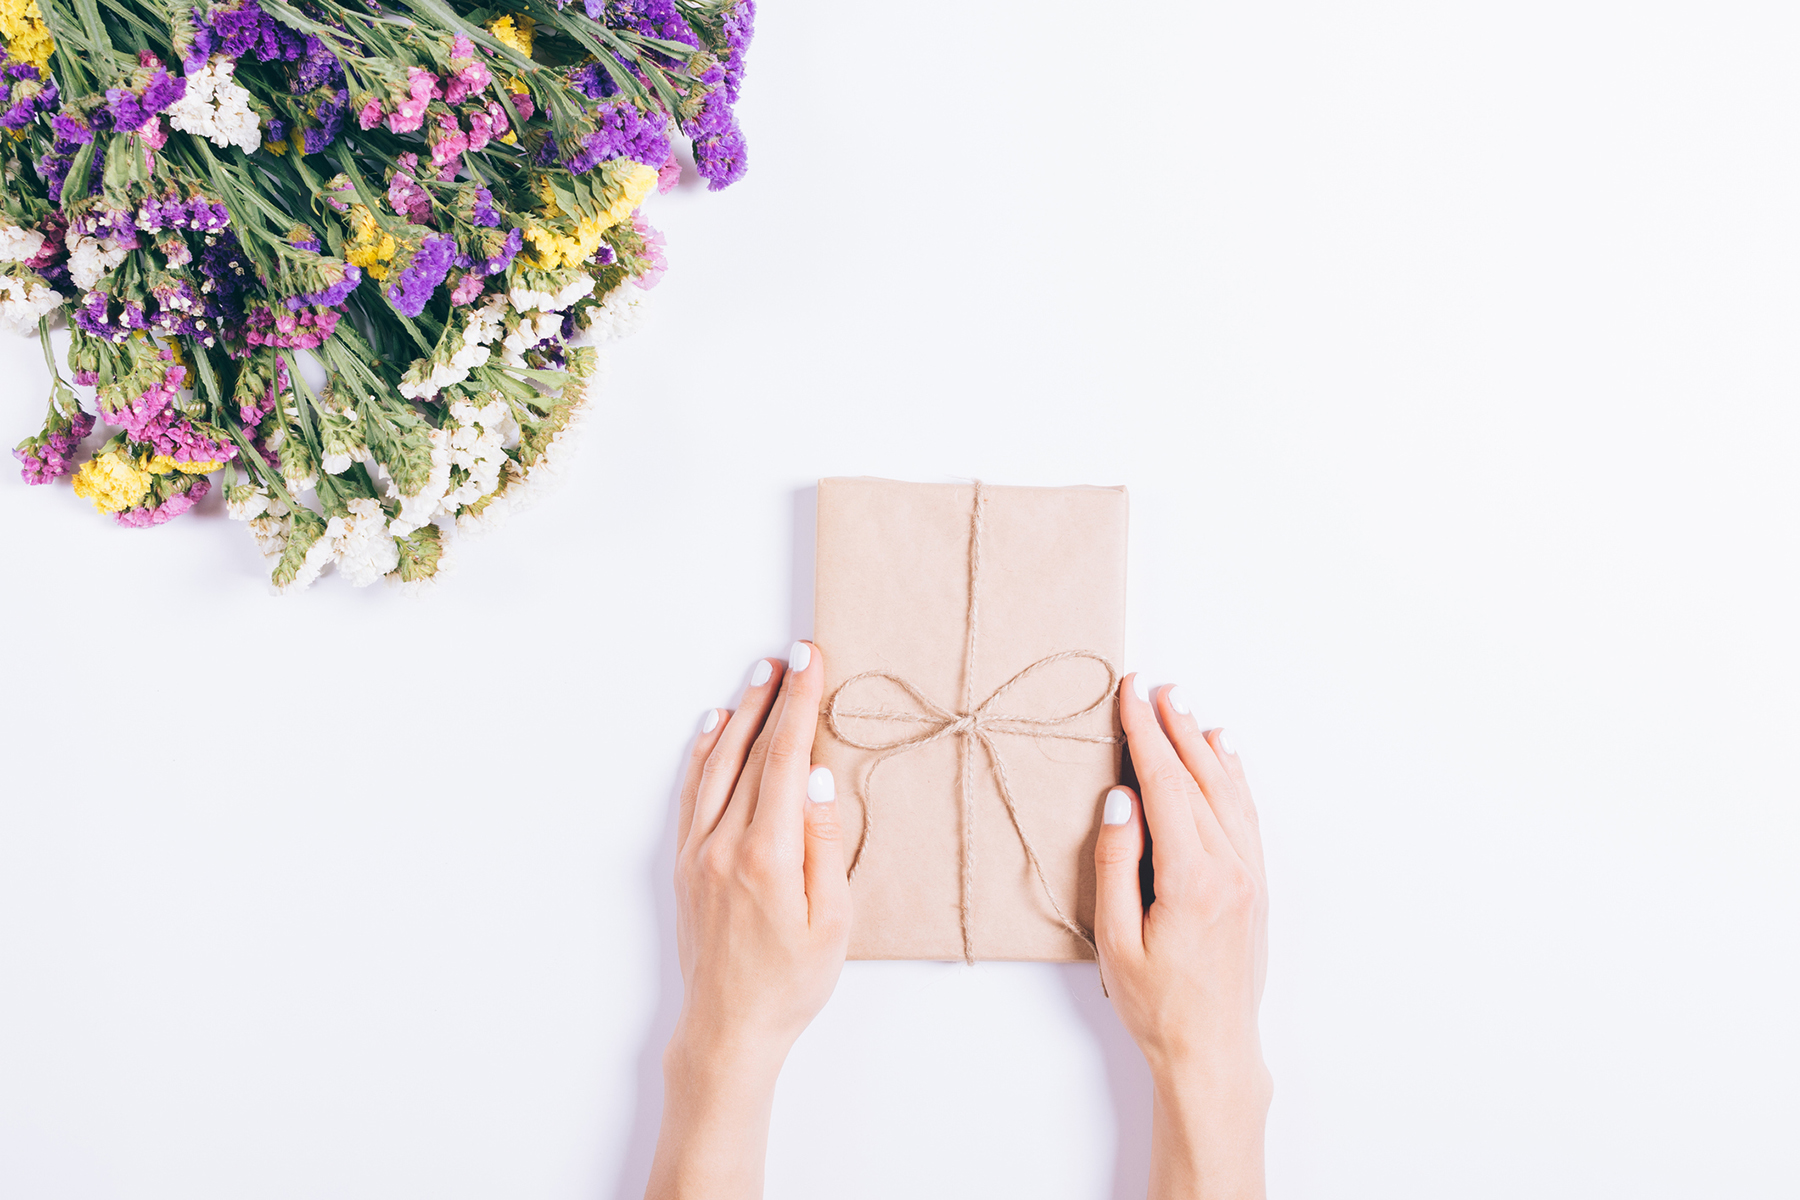 hands holding a wrapped book as a gift with a bouquet